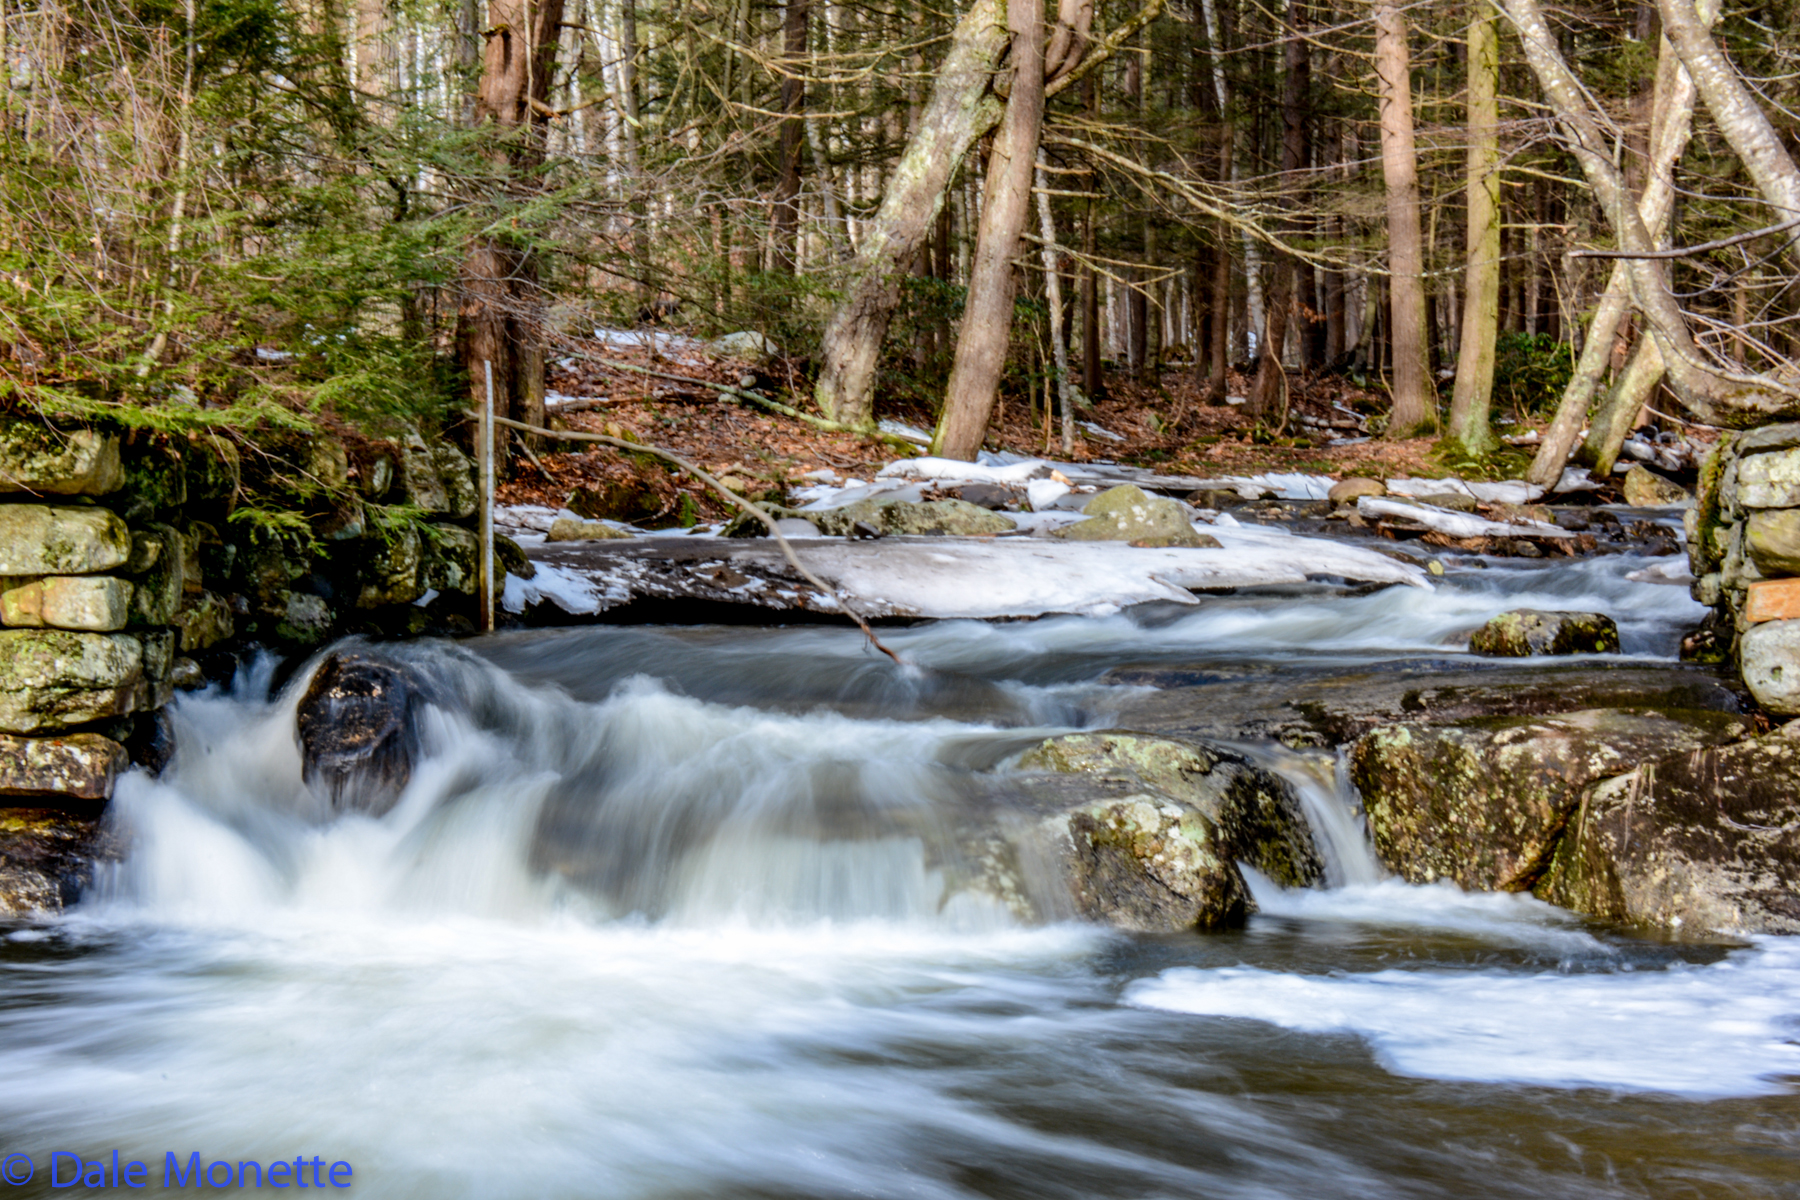 Brooks over flow with snow melt.  This is Hop Brook in the New Salem area. The Quabbin's water level also rises.